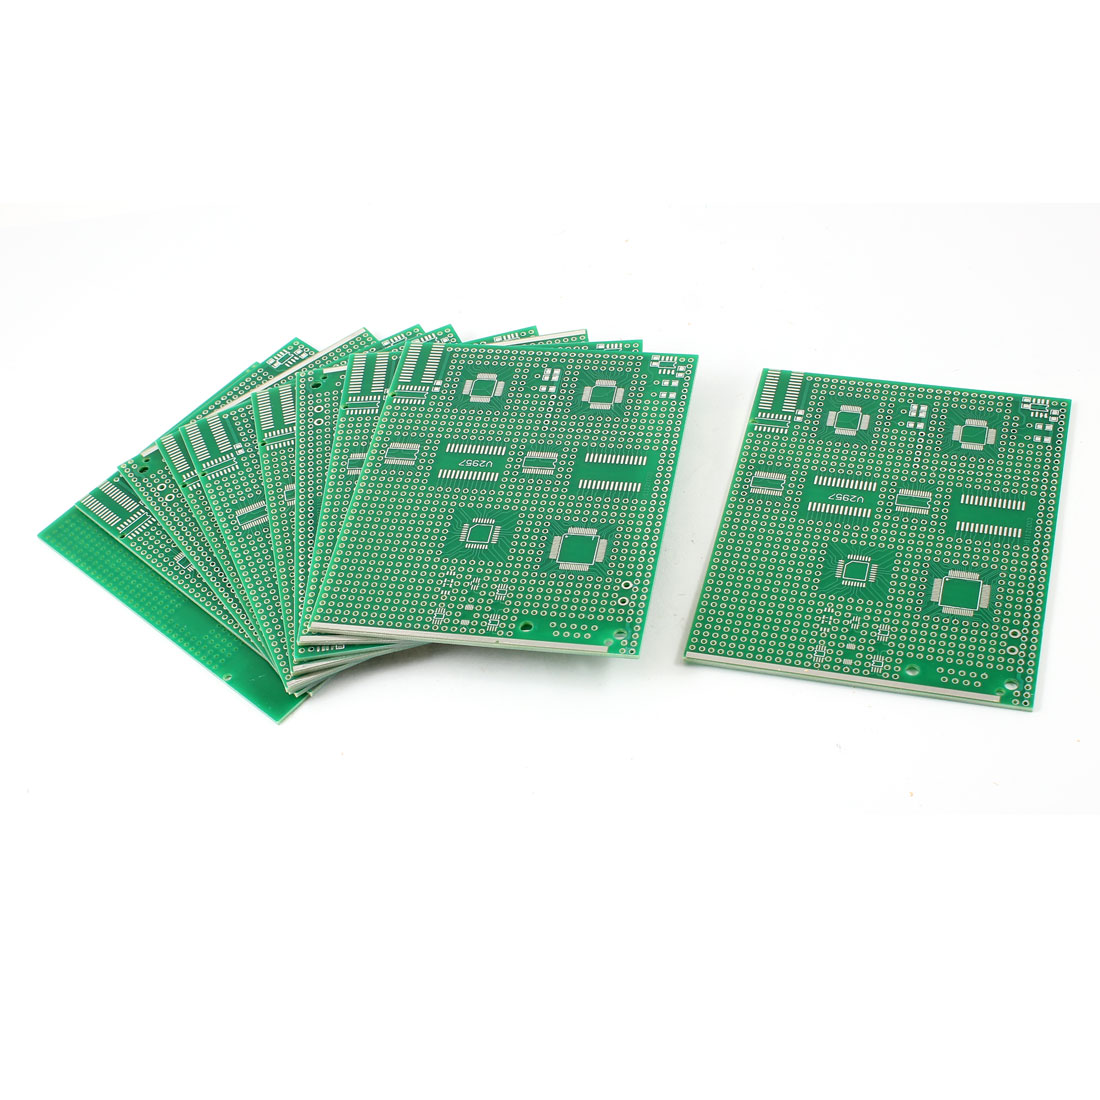 10 Pcs TQFP32/48/64 0.5mm/0.8mm Pitch to DIP Single Side PCB Circuit Adapter Board 9x11cm